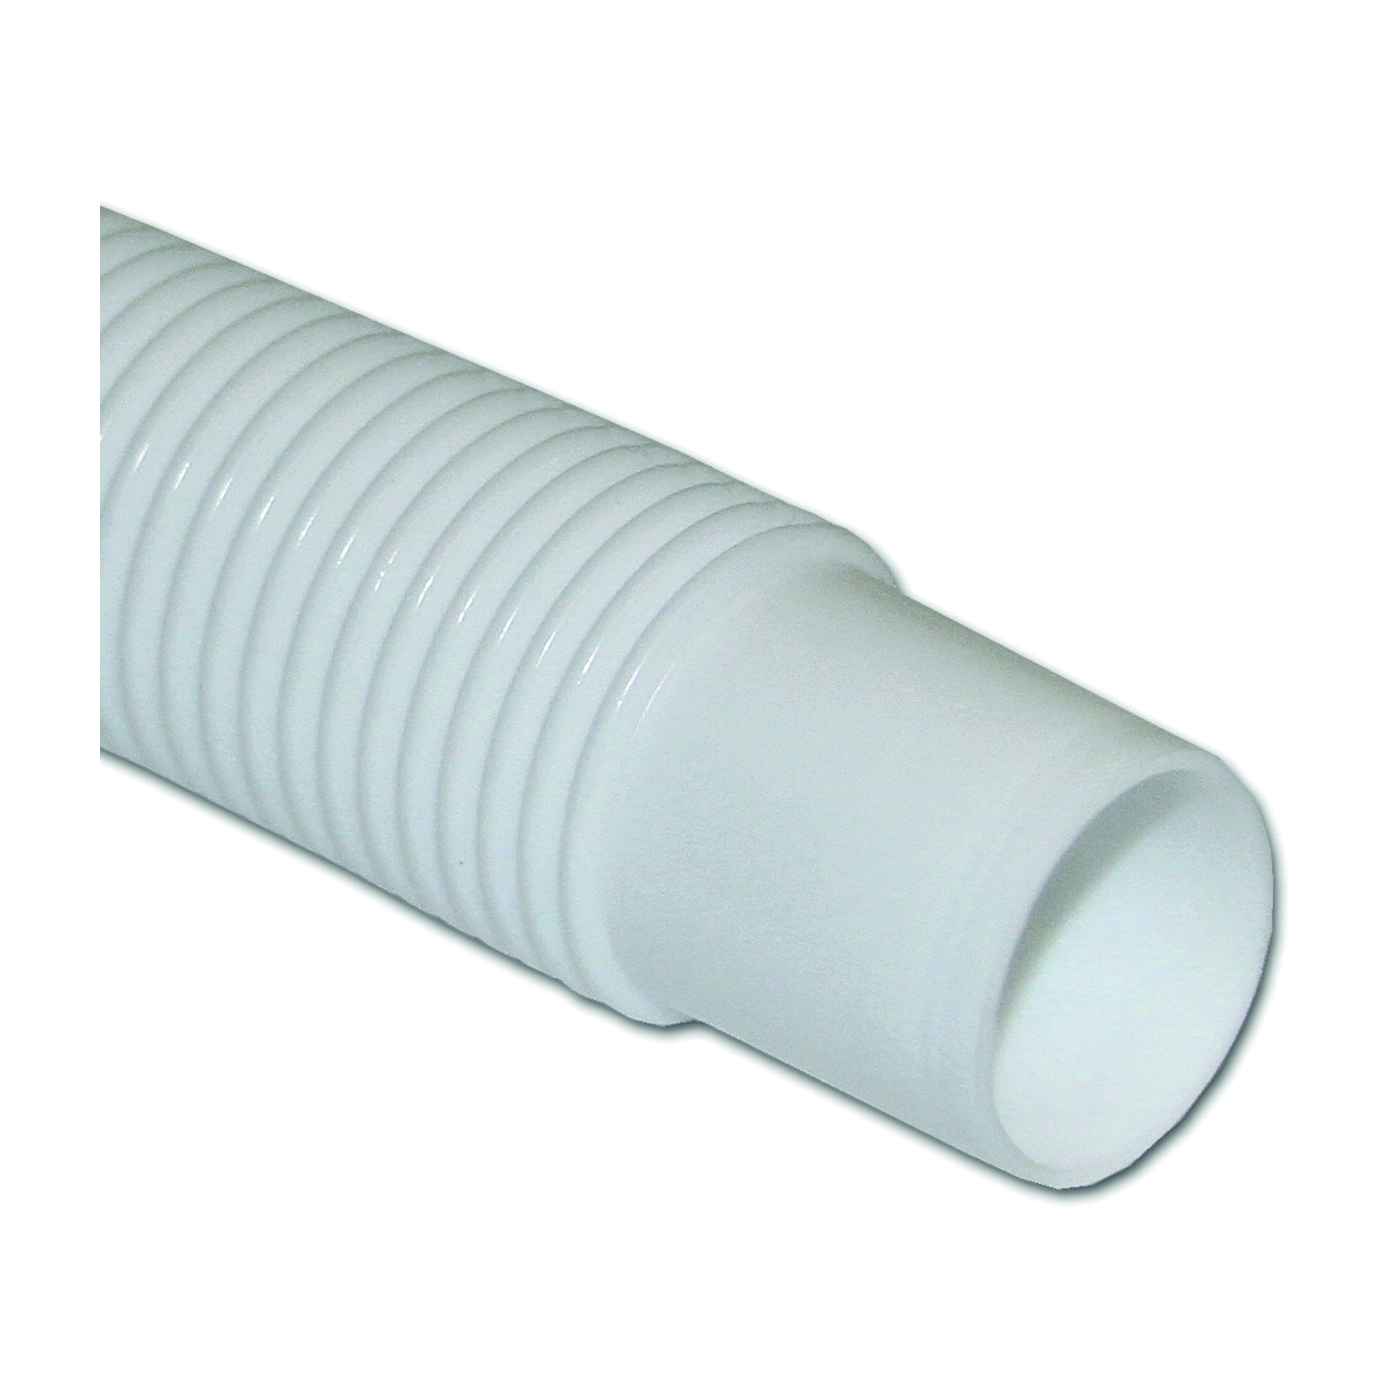 Picture of UDP T34 Series T34005003/RBBP Bilge Hose, 1-1/4 in ID, 50 ft L, Polyethylene, Milky White